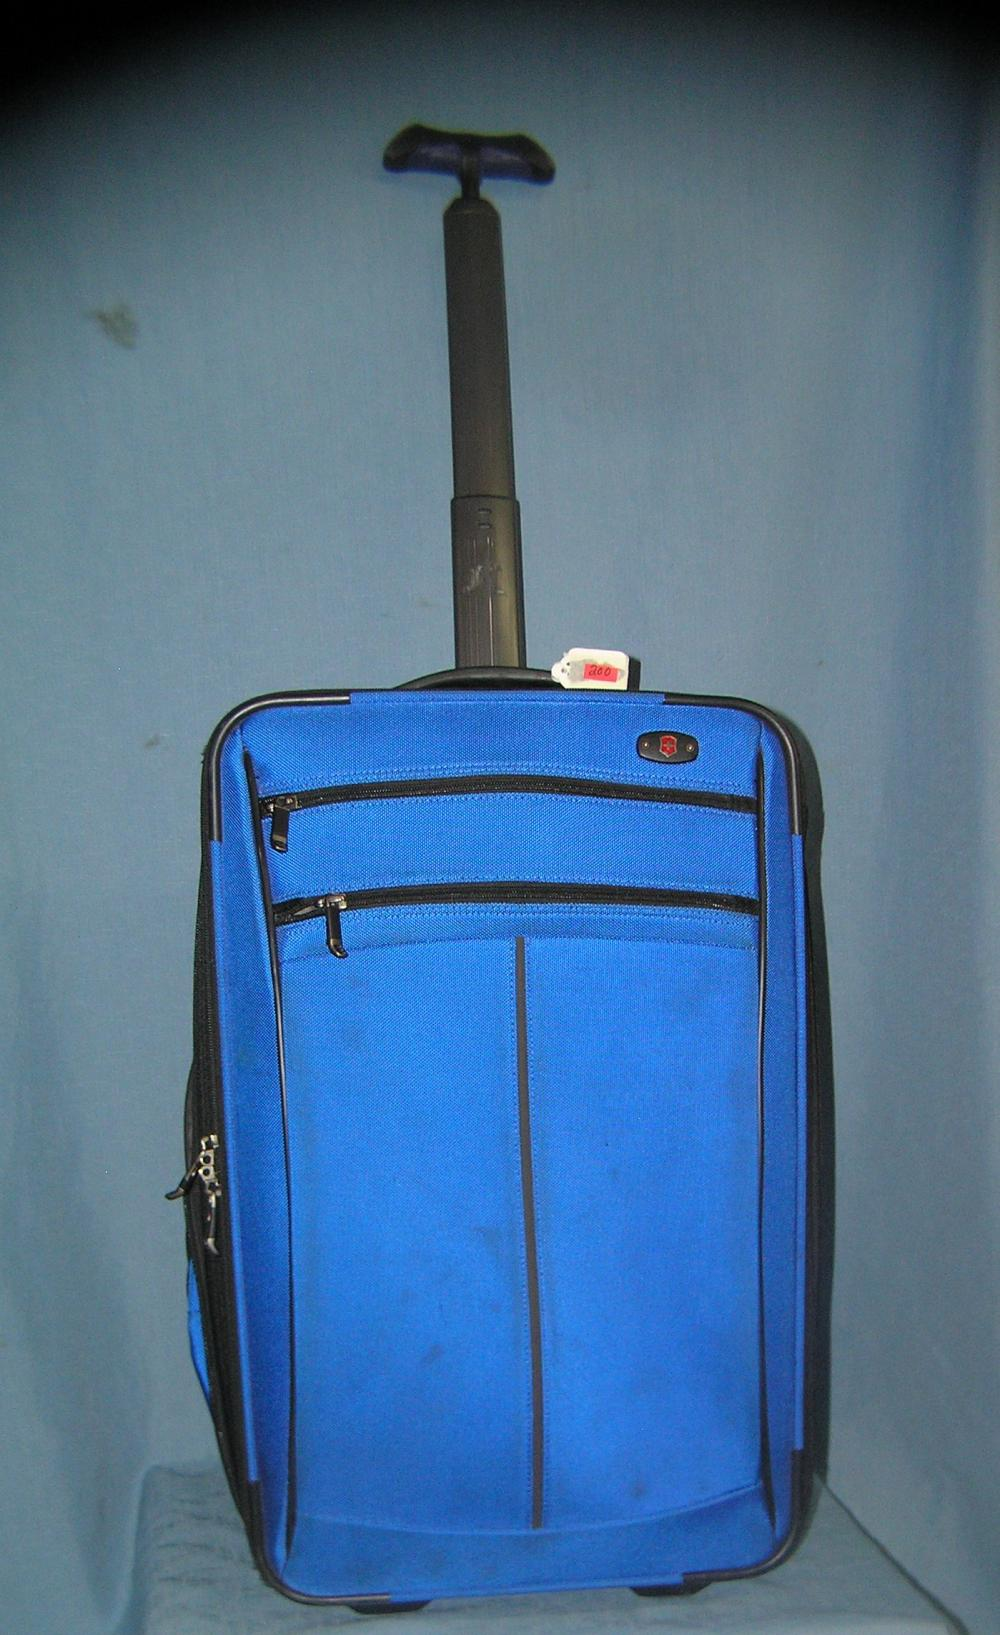 MODERN TRAVEL LUGGAGE CASE